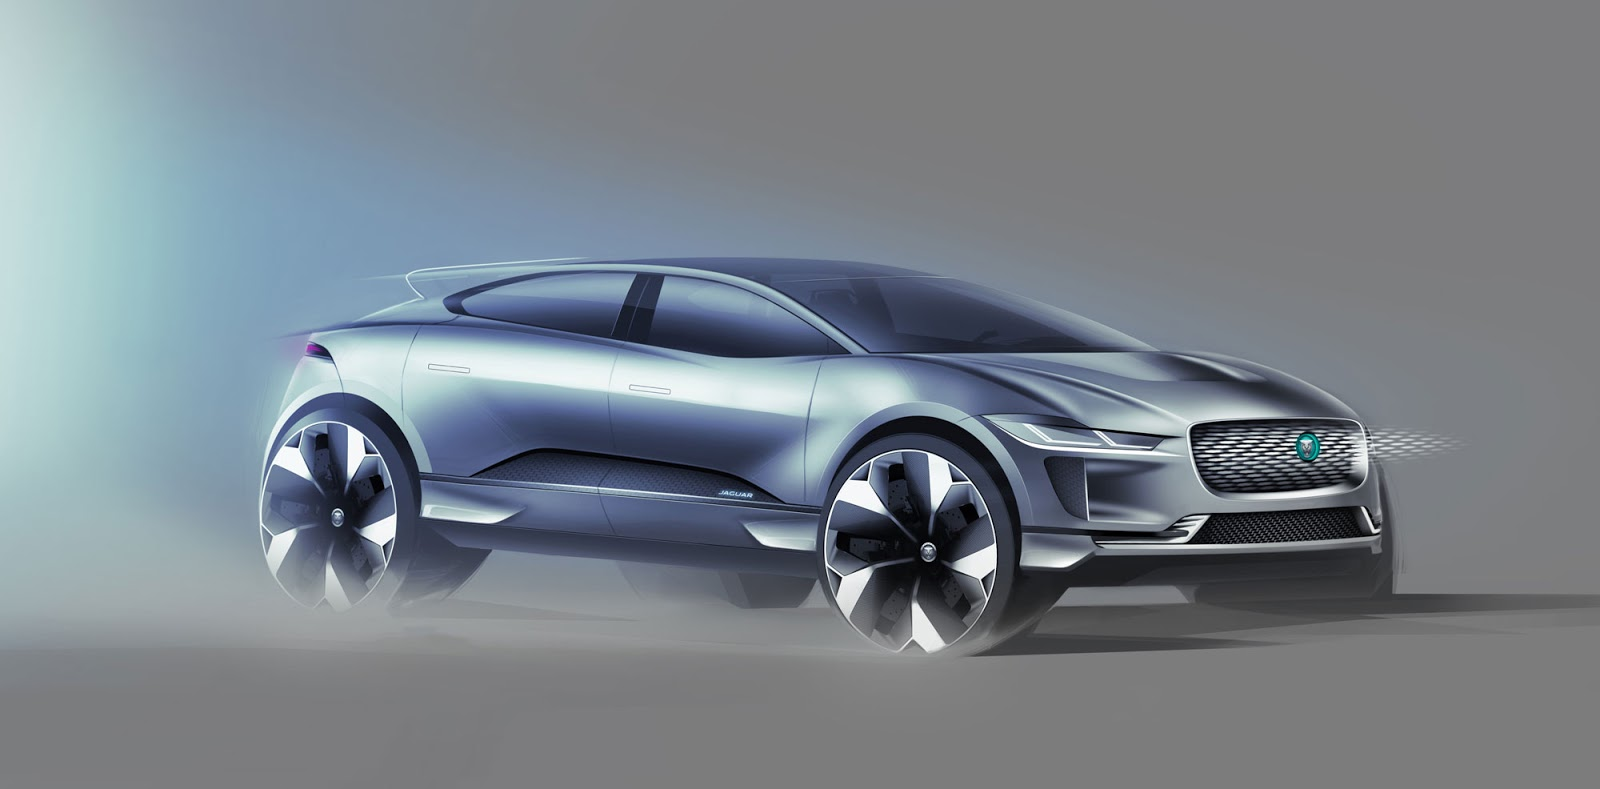 Jaguar I-Pace sketch - front three-quarter view